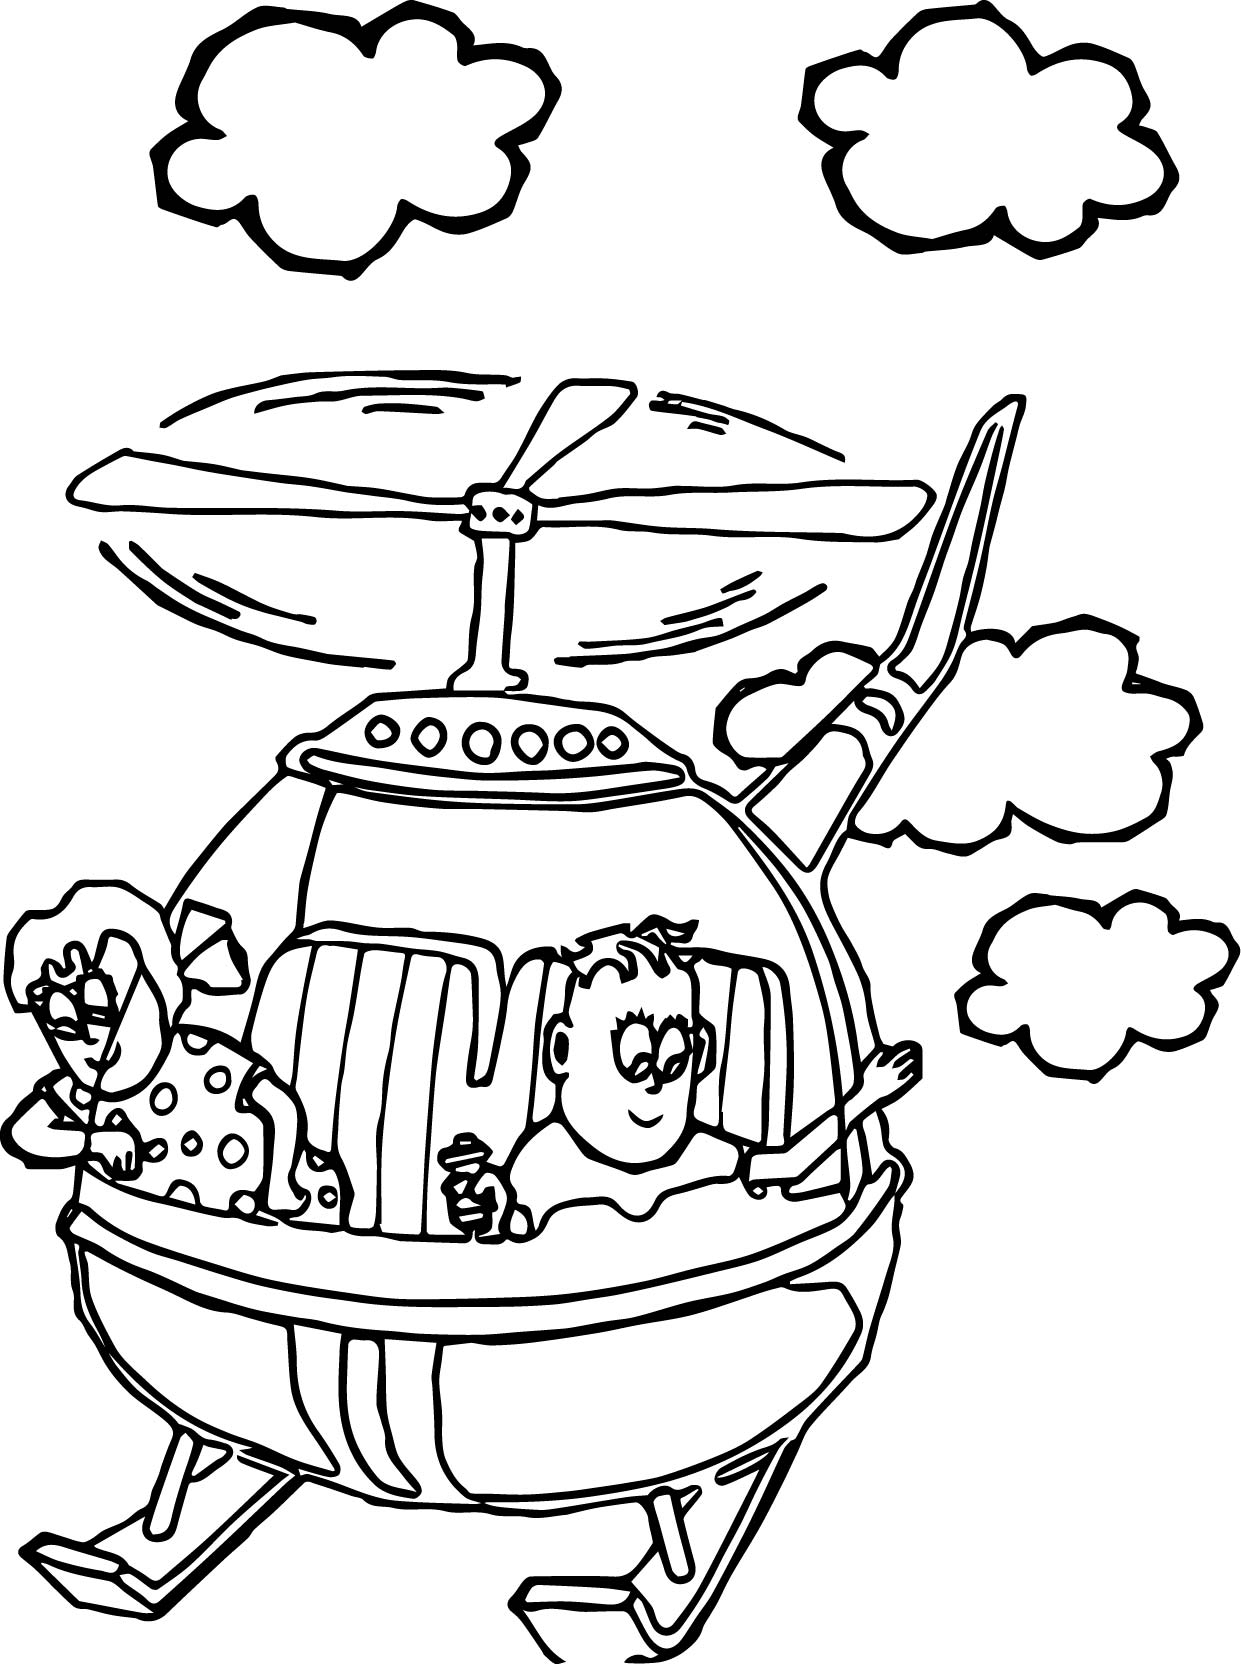 1241x1664 Fresh Helicopters Coloring Pages Gallery Printable Coloring Sheet